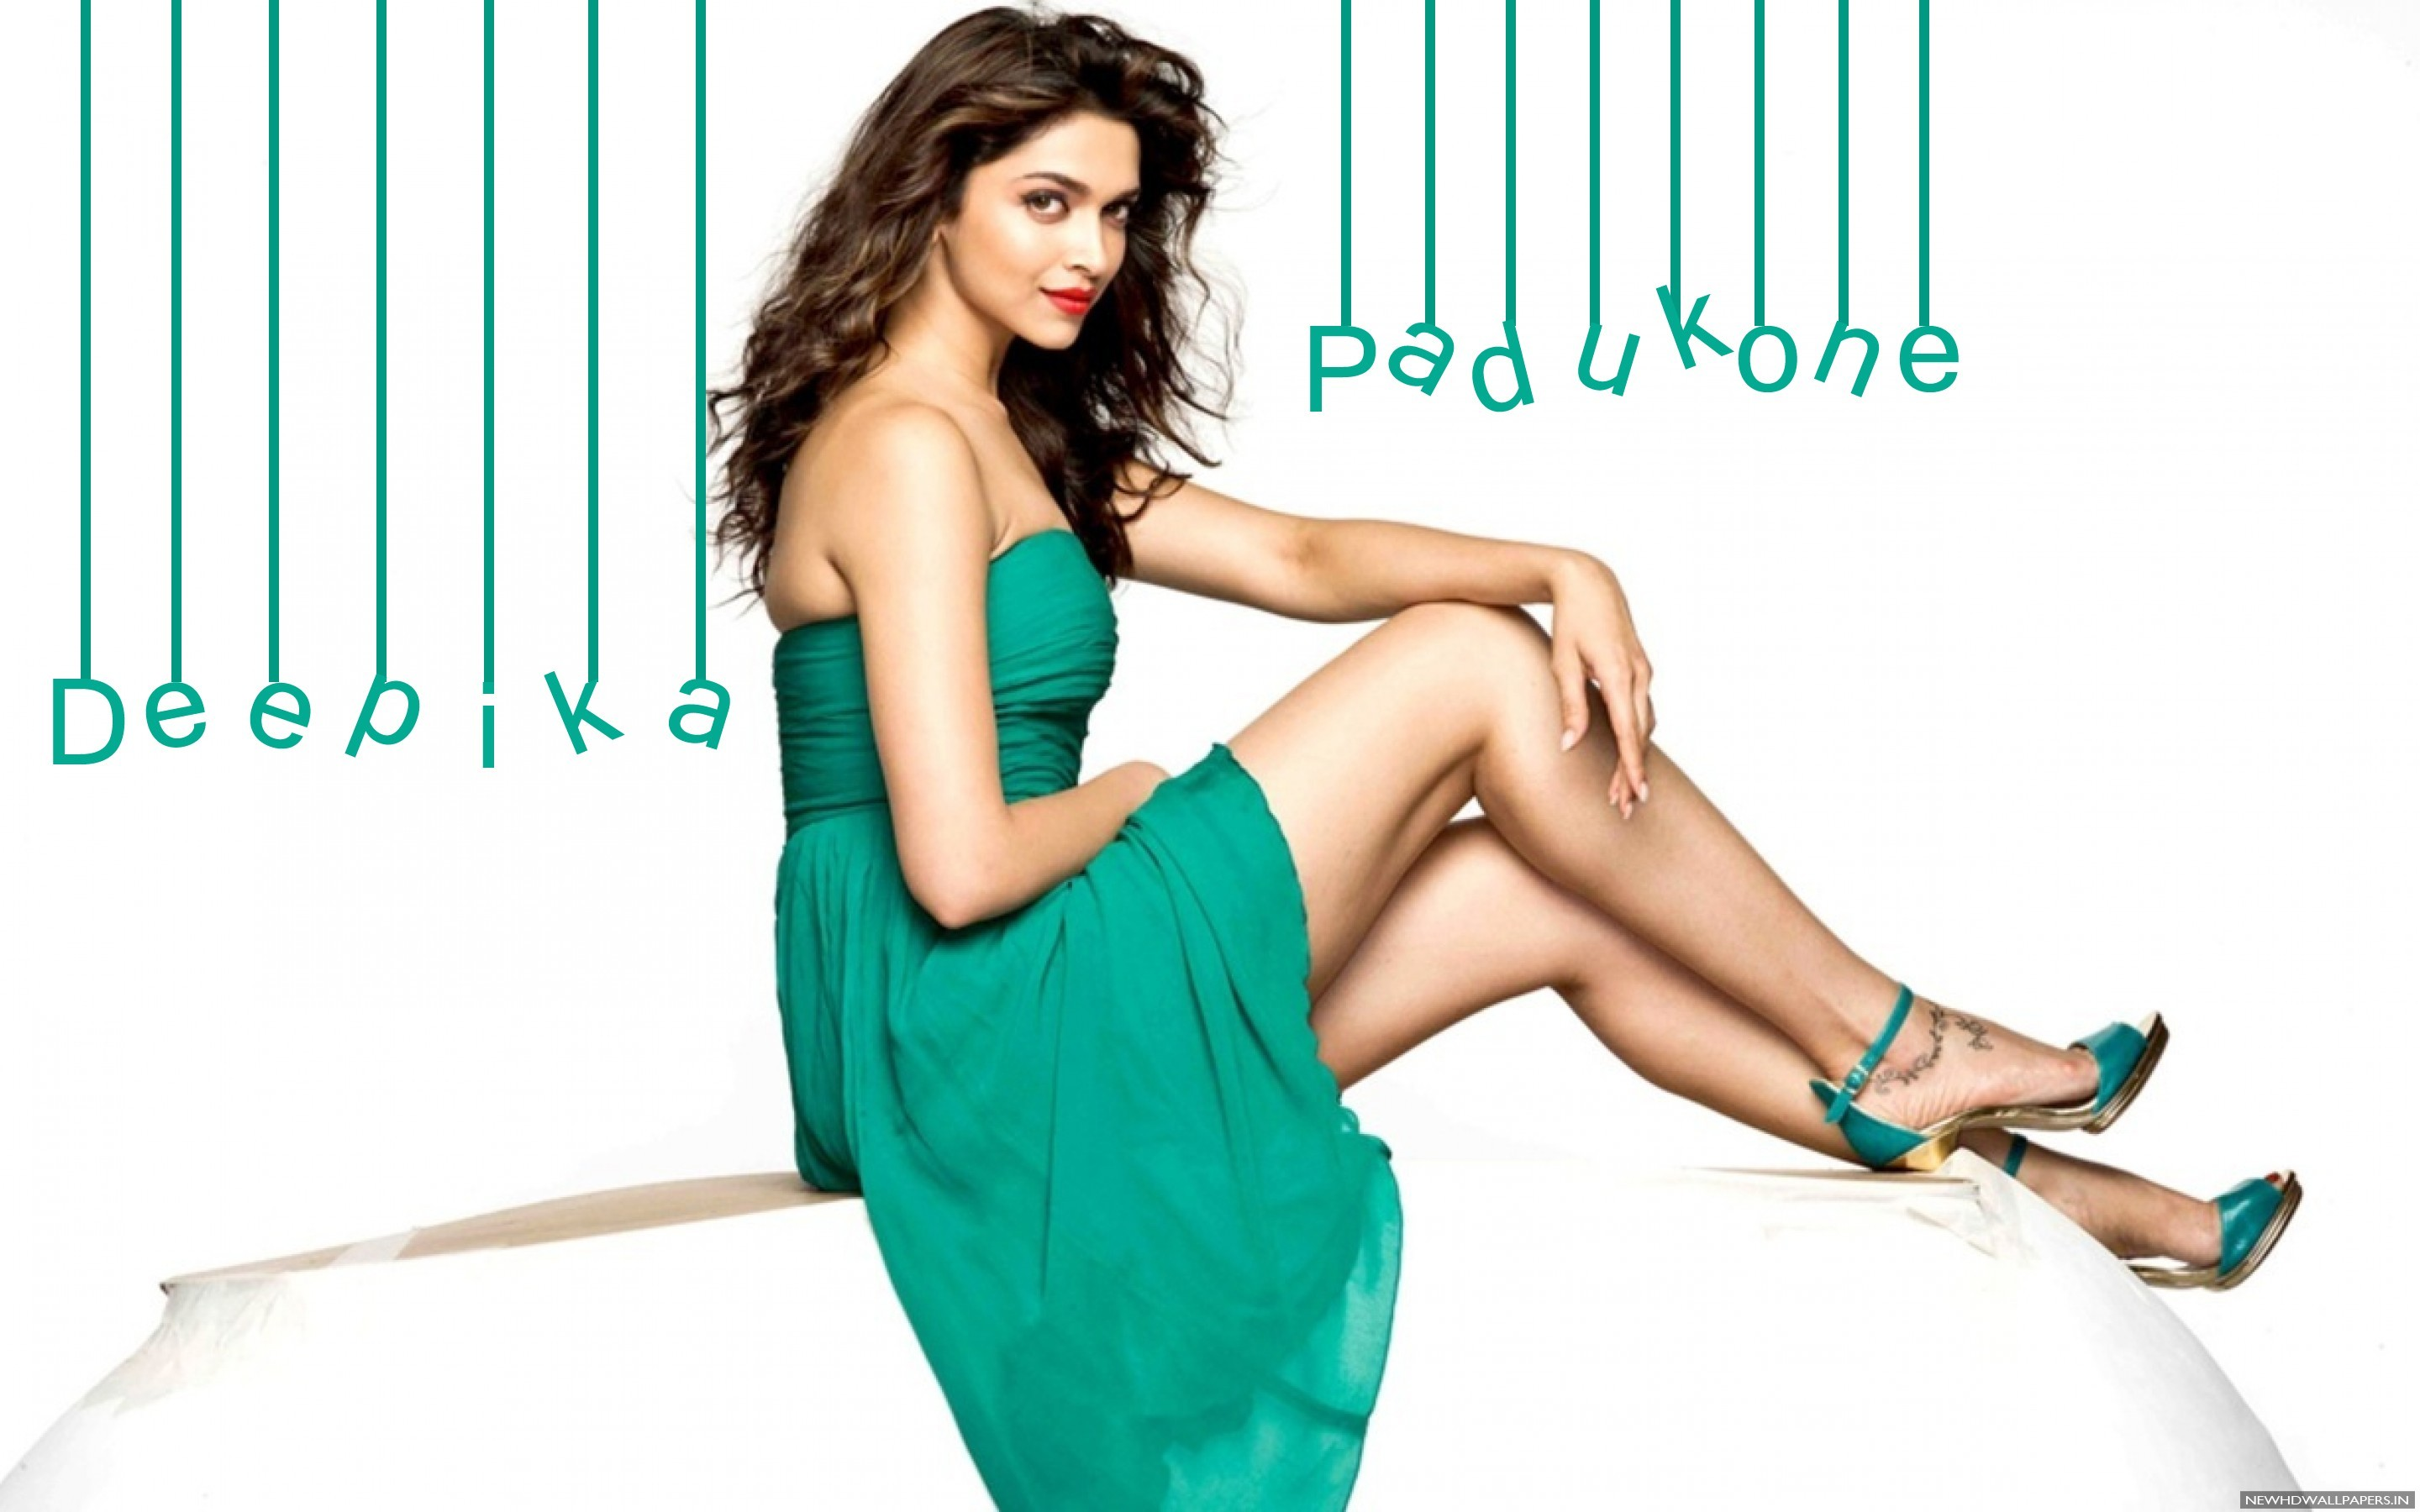 Deepika Padukone Wallpapers, Pictures, Images-7959